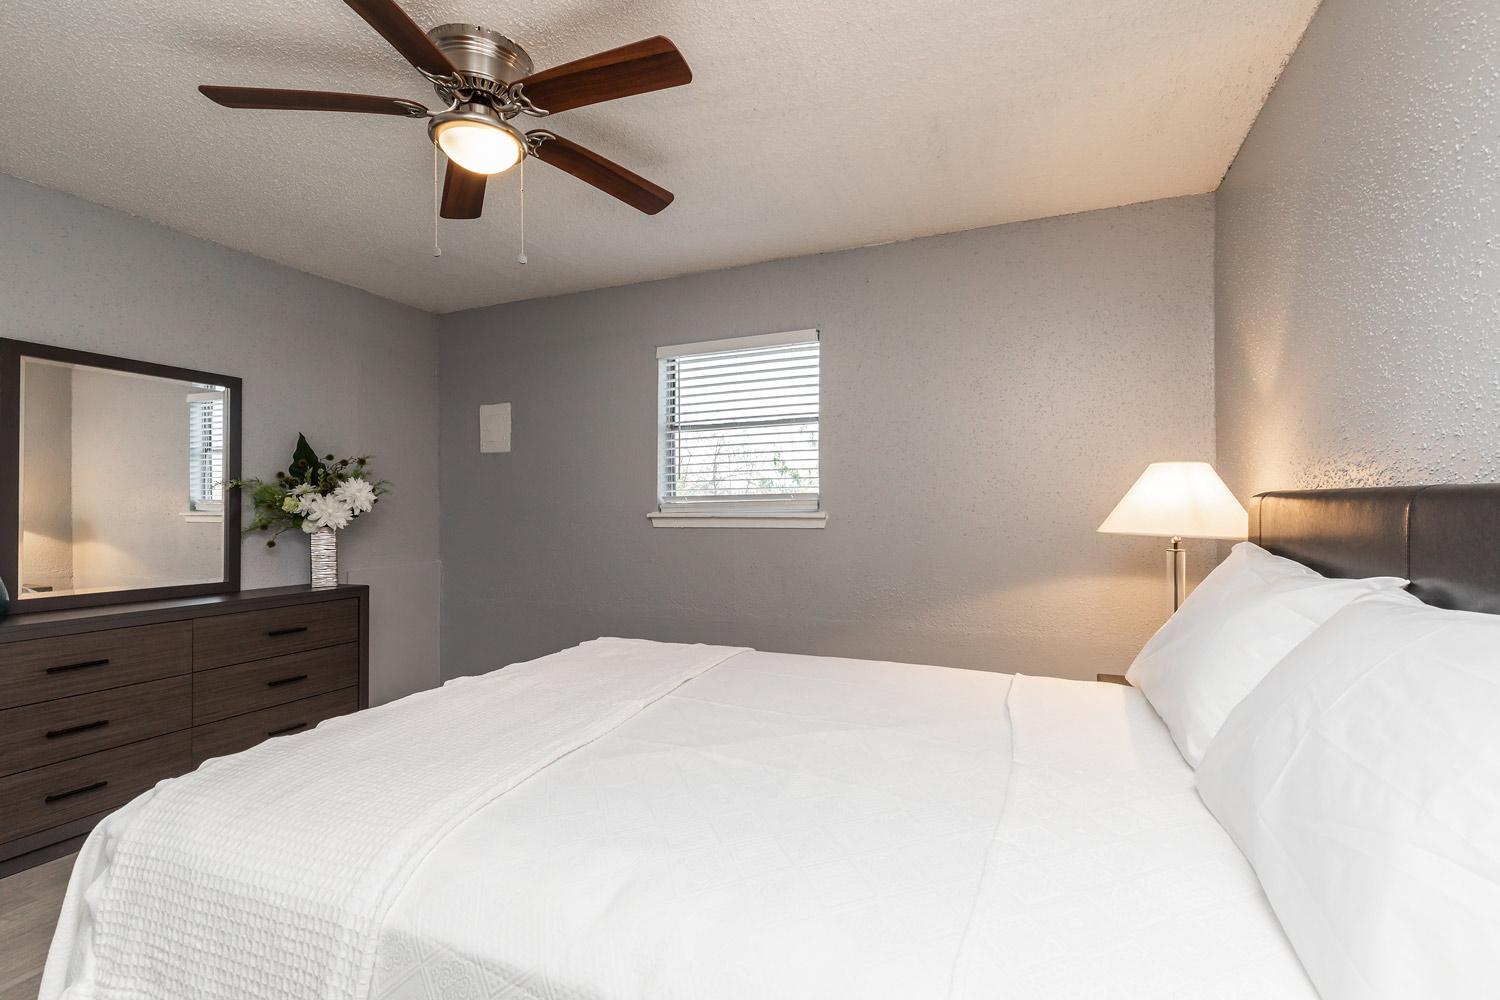 Very Clean Bedroom at The Five Points at Texas Apartments in Texas City, Texas